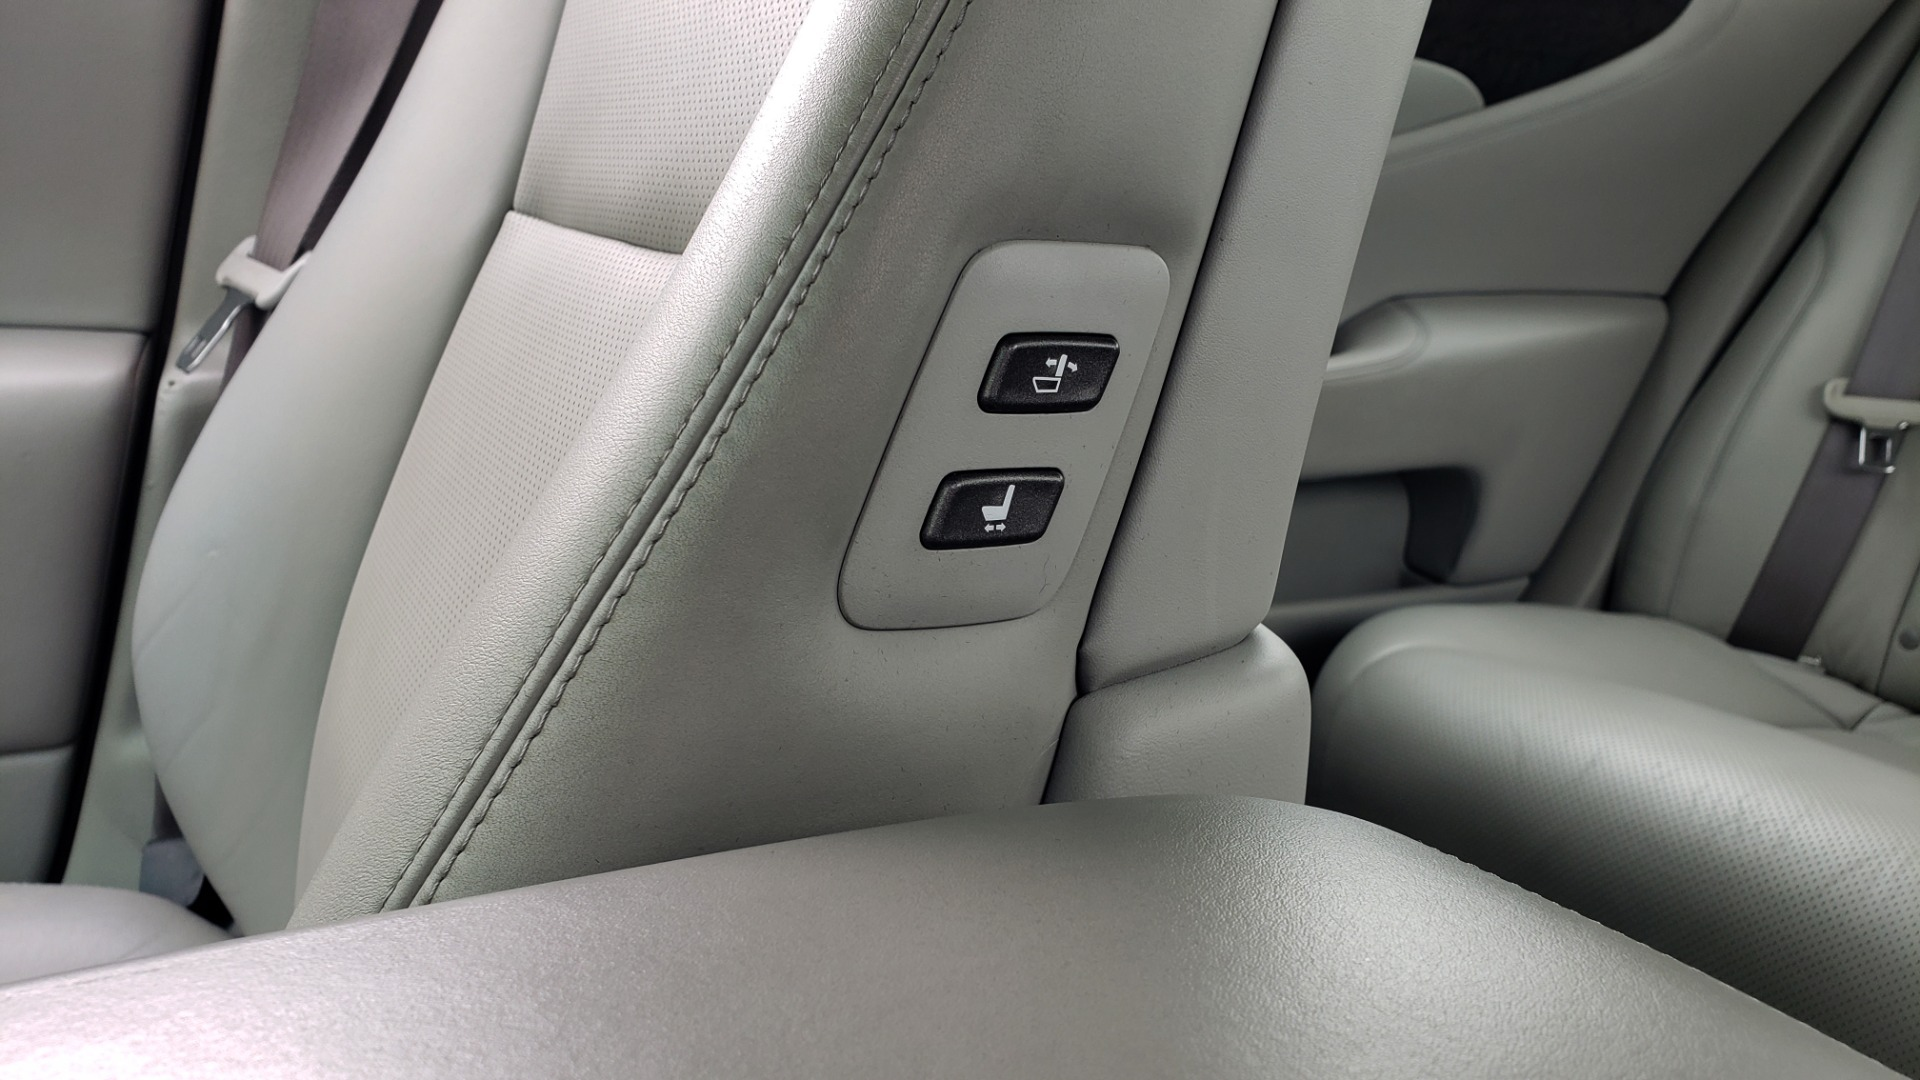 Used 2008 Lexus LS 460 LWB LUXURY SEDAN / MARK LEVINSON / INT PARK ASST / REARVIEW for sale Sold at Formula Imports in Charlotte NC 28227 56